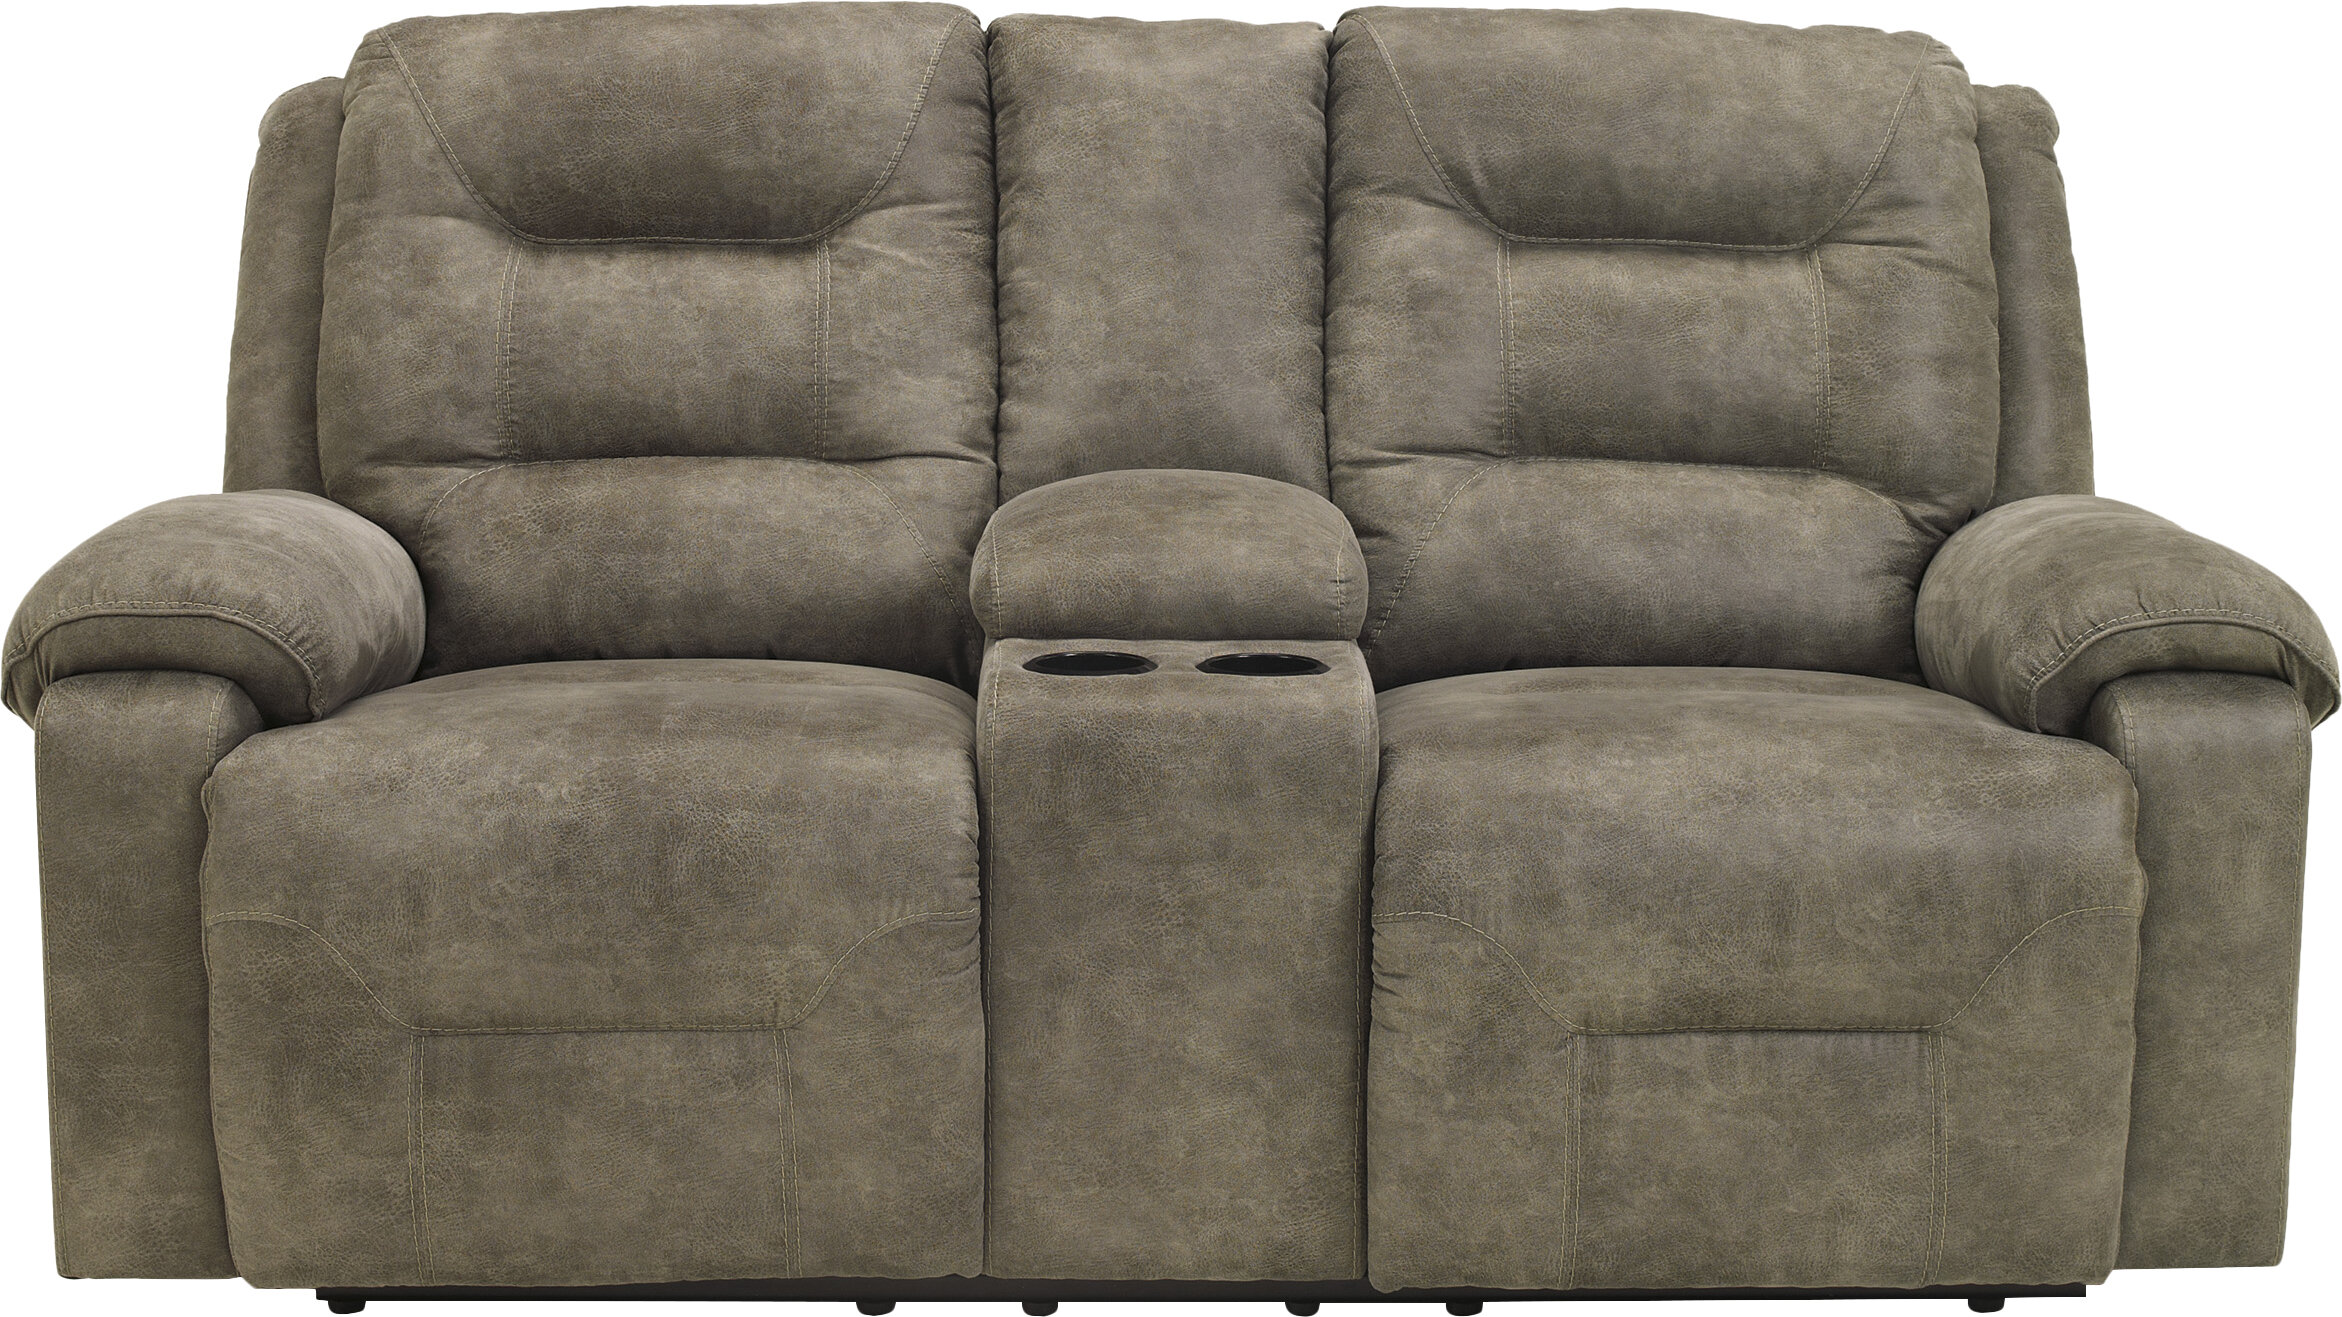 Loon Peak Tressider Reclining 77 Round Arms Loveseat Reviews Wayfair